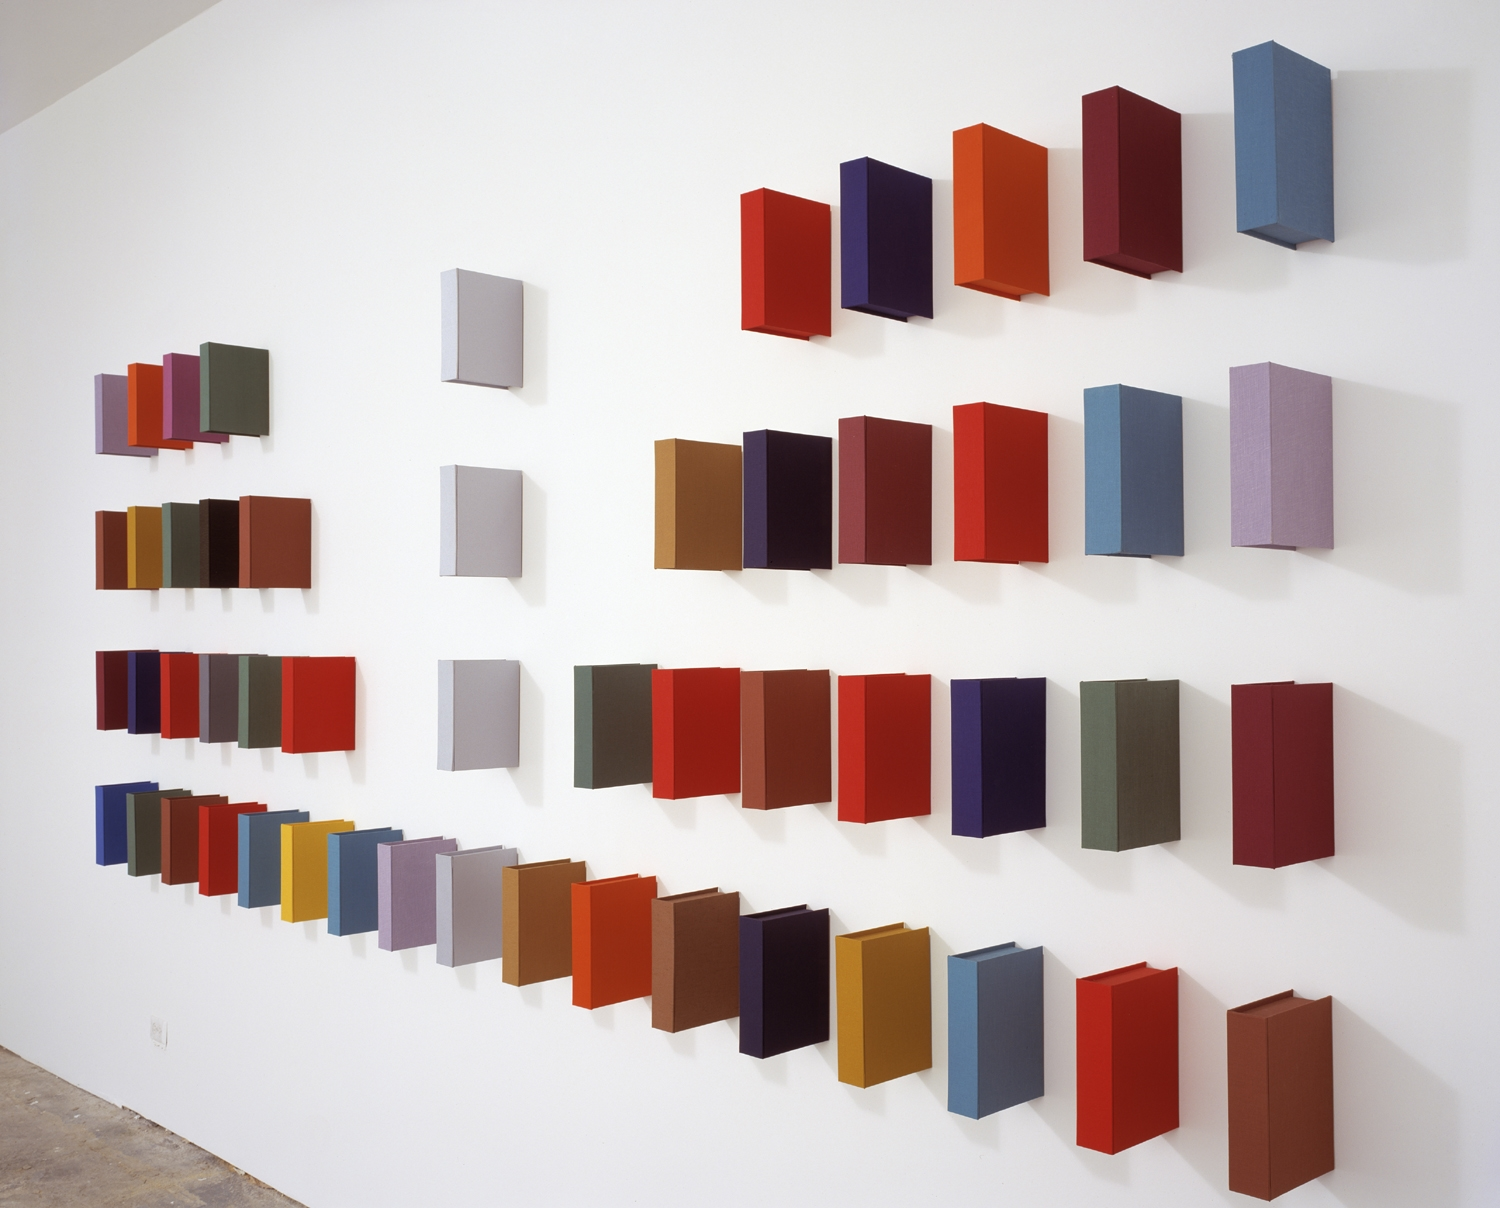 Love Theft Murder Betrayal (Mirrored); Bookbinding Board, Fabric and Wood; Dimensions Variable; 2003